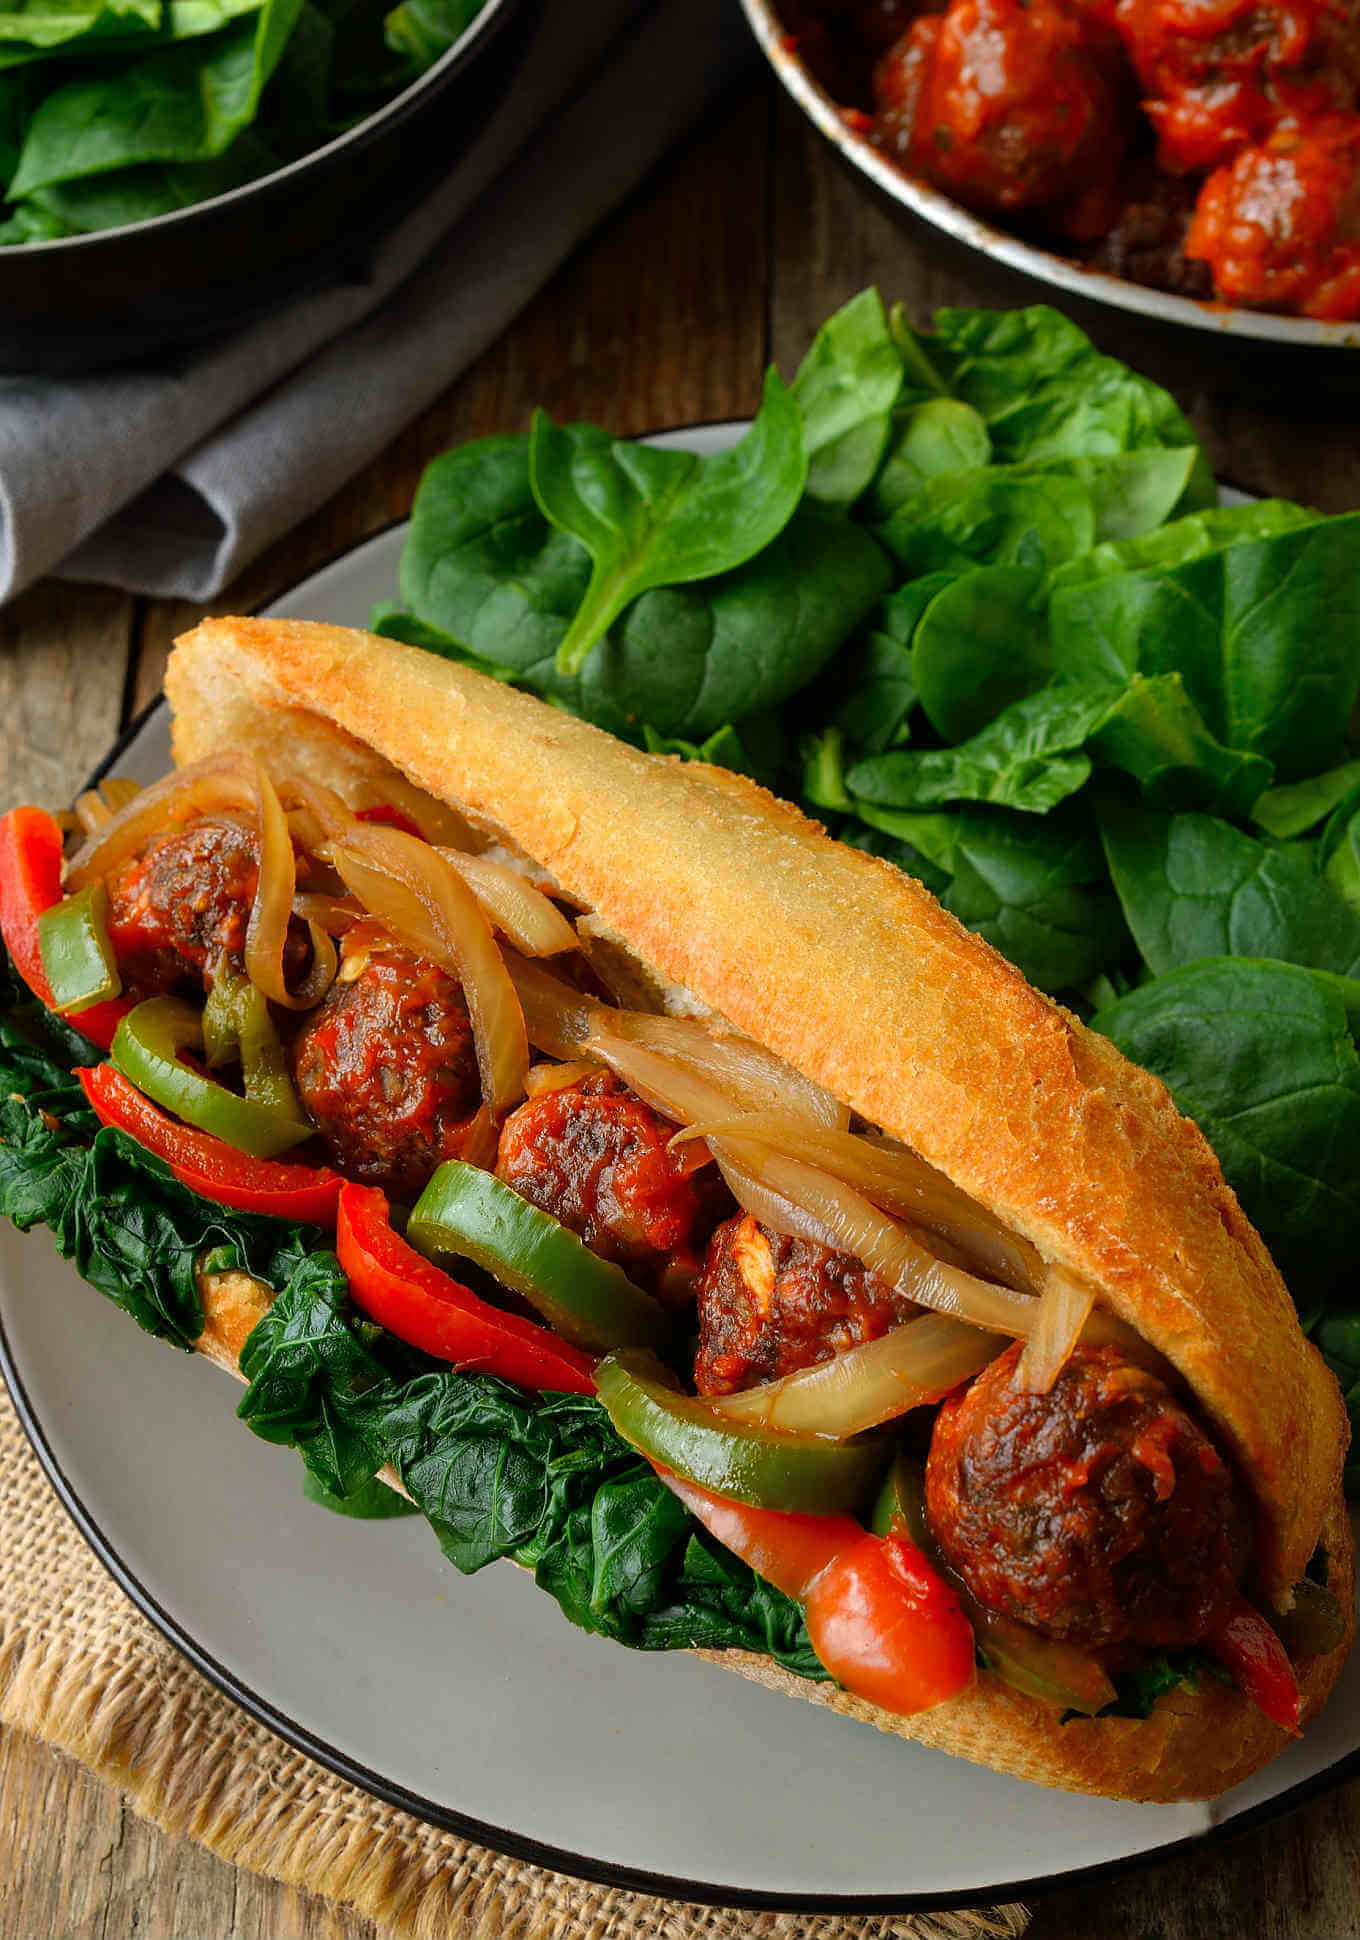 Vegan 'Meatball' Sub // How gorgeous are those vegan meatballs? And their taste is even better. Your co-workers/classmates will be envious of it, that's for sure. | The Green Loot #vegan #lunch